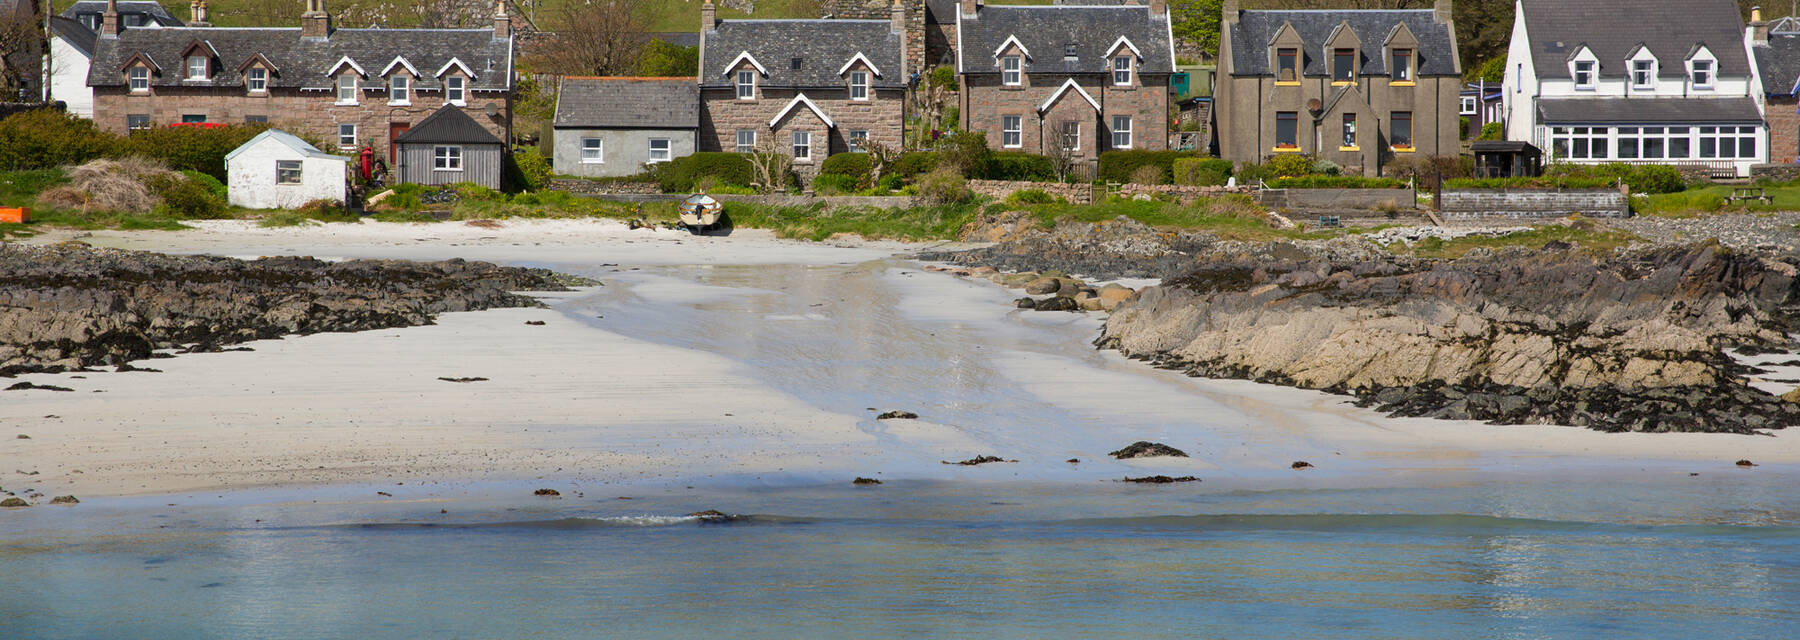 Iona sandy beach with houses and hill in background